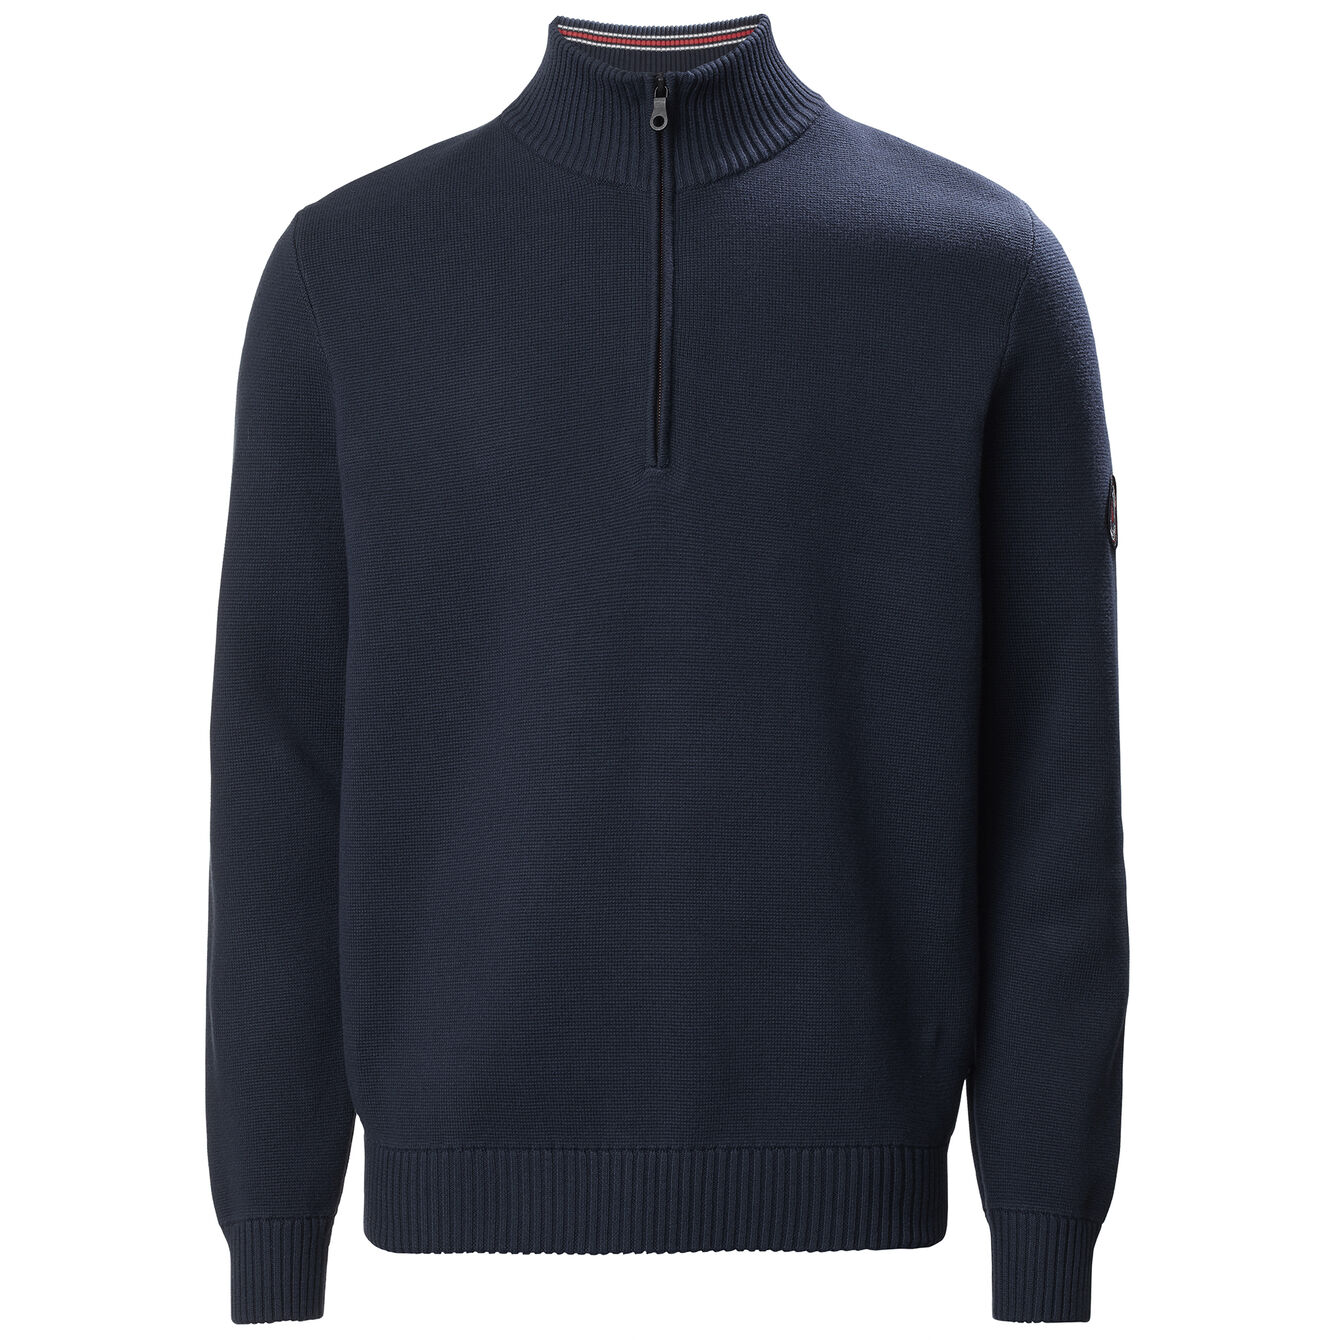 MILANO 1/2 ZIP NECK KNIT